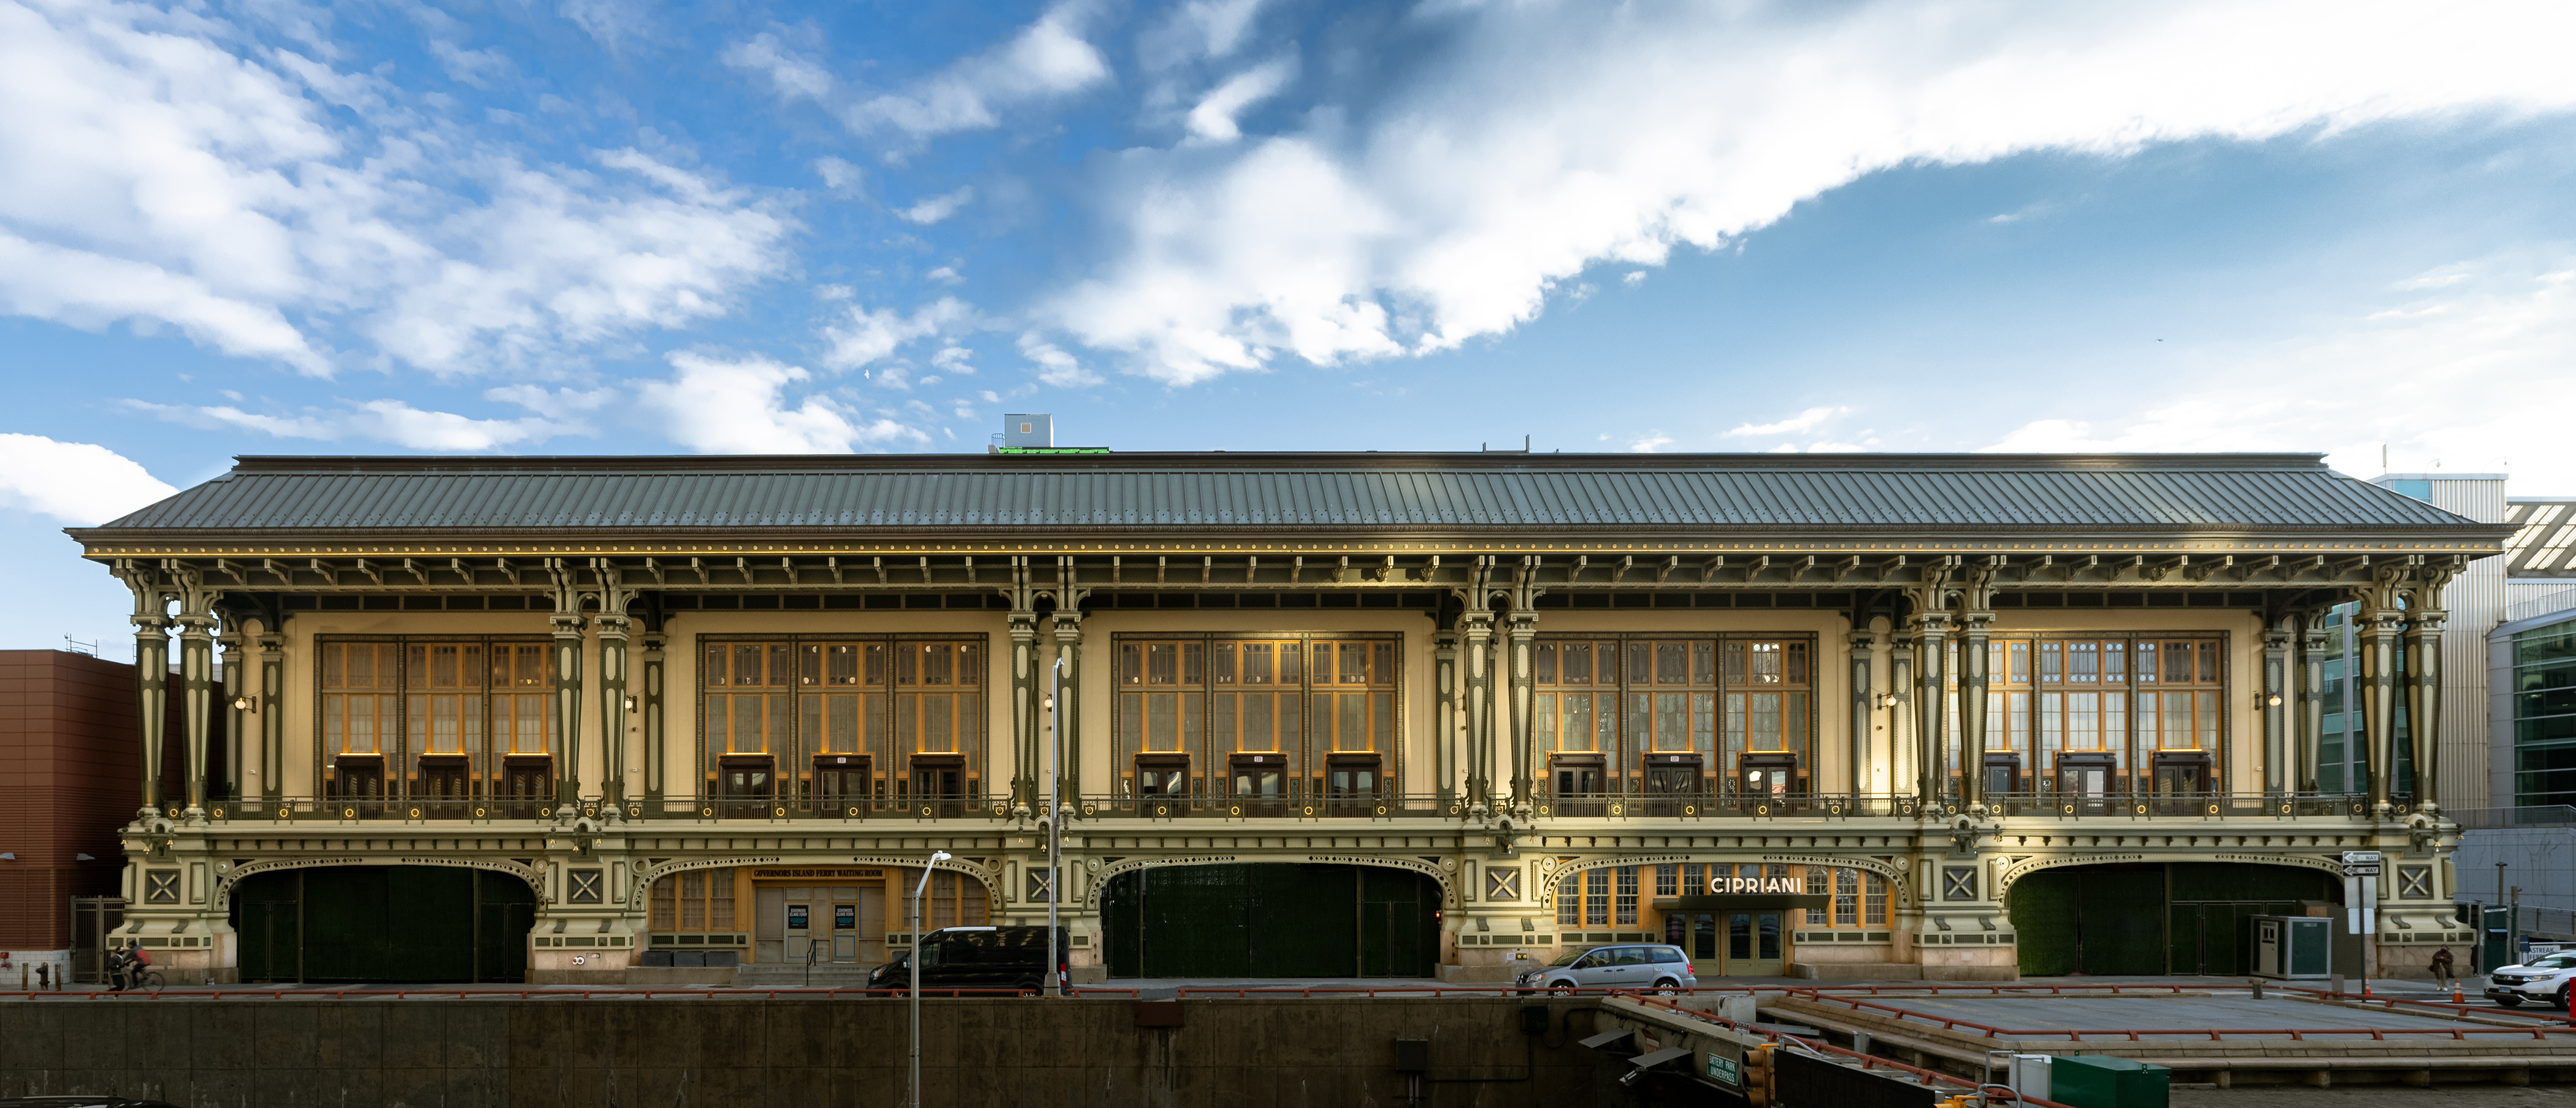 Cipriani South Street at the Battery Maritime Building, the venue for the 2021 Independent Art Fair. Courtesy of Etienne Frossard and Independent New York.